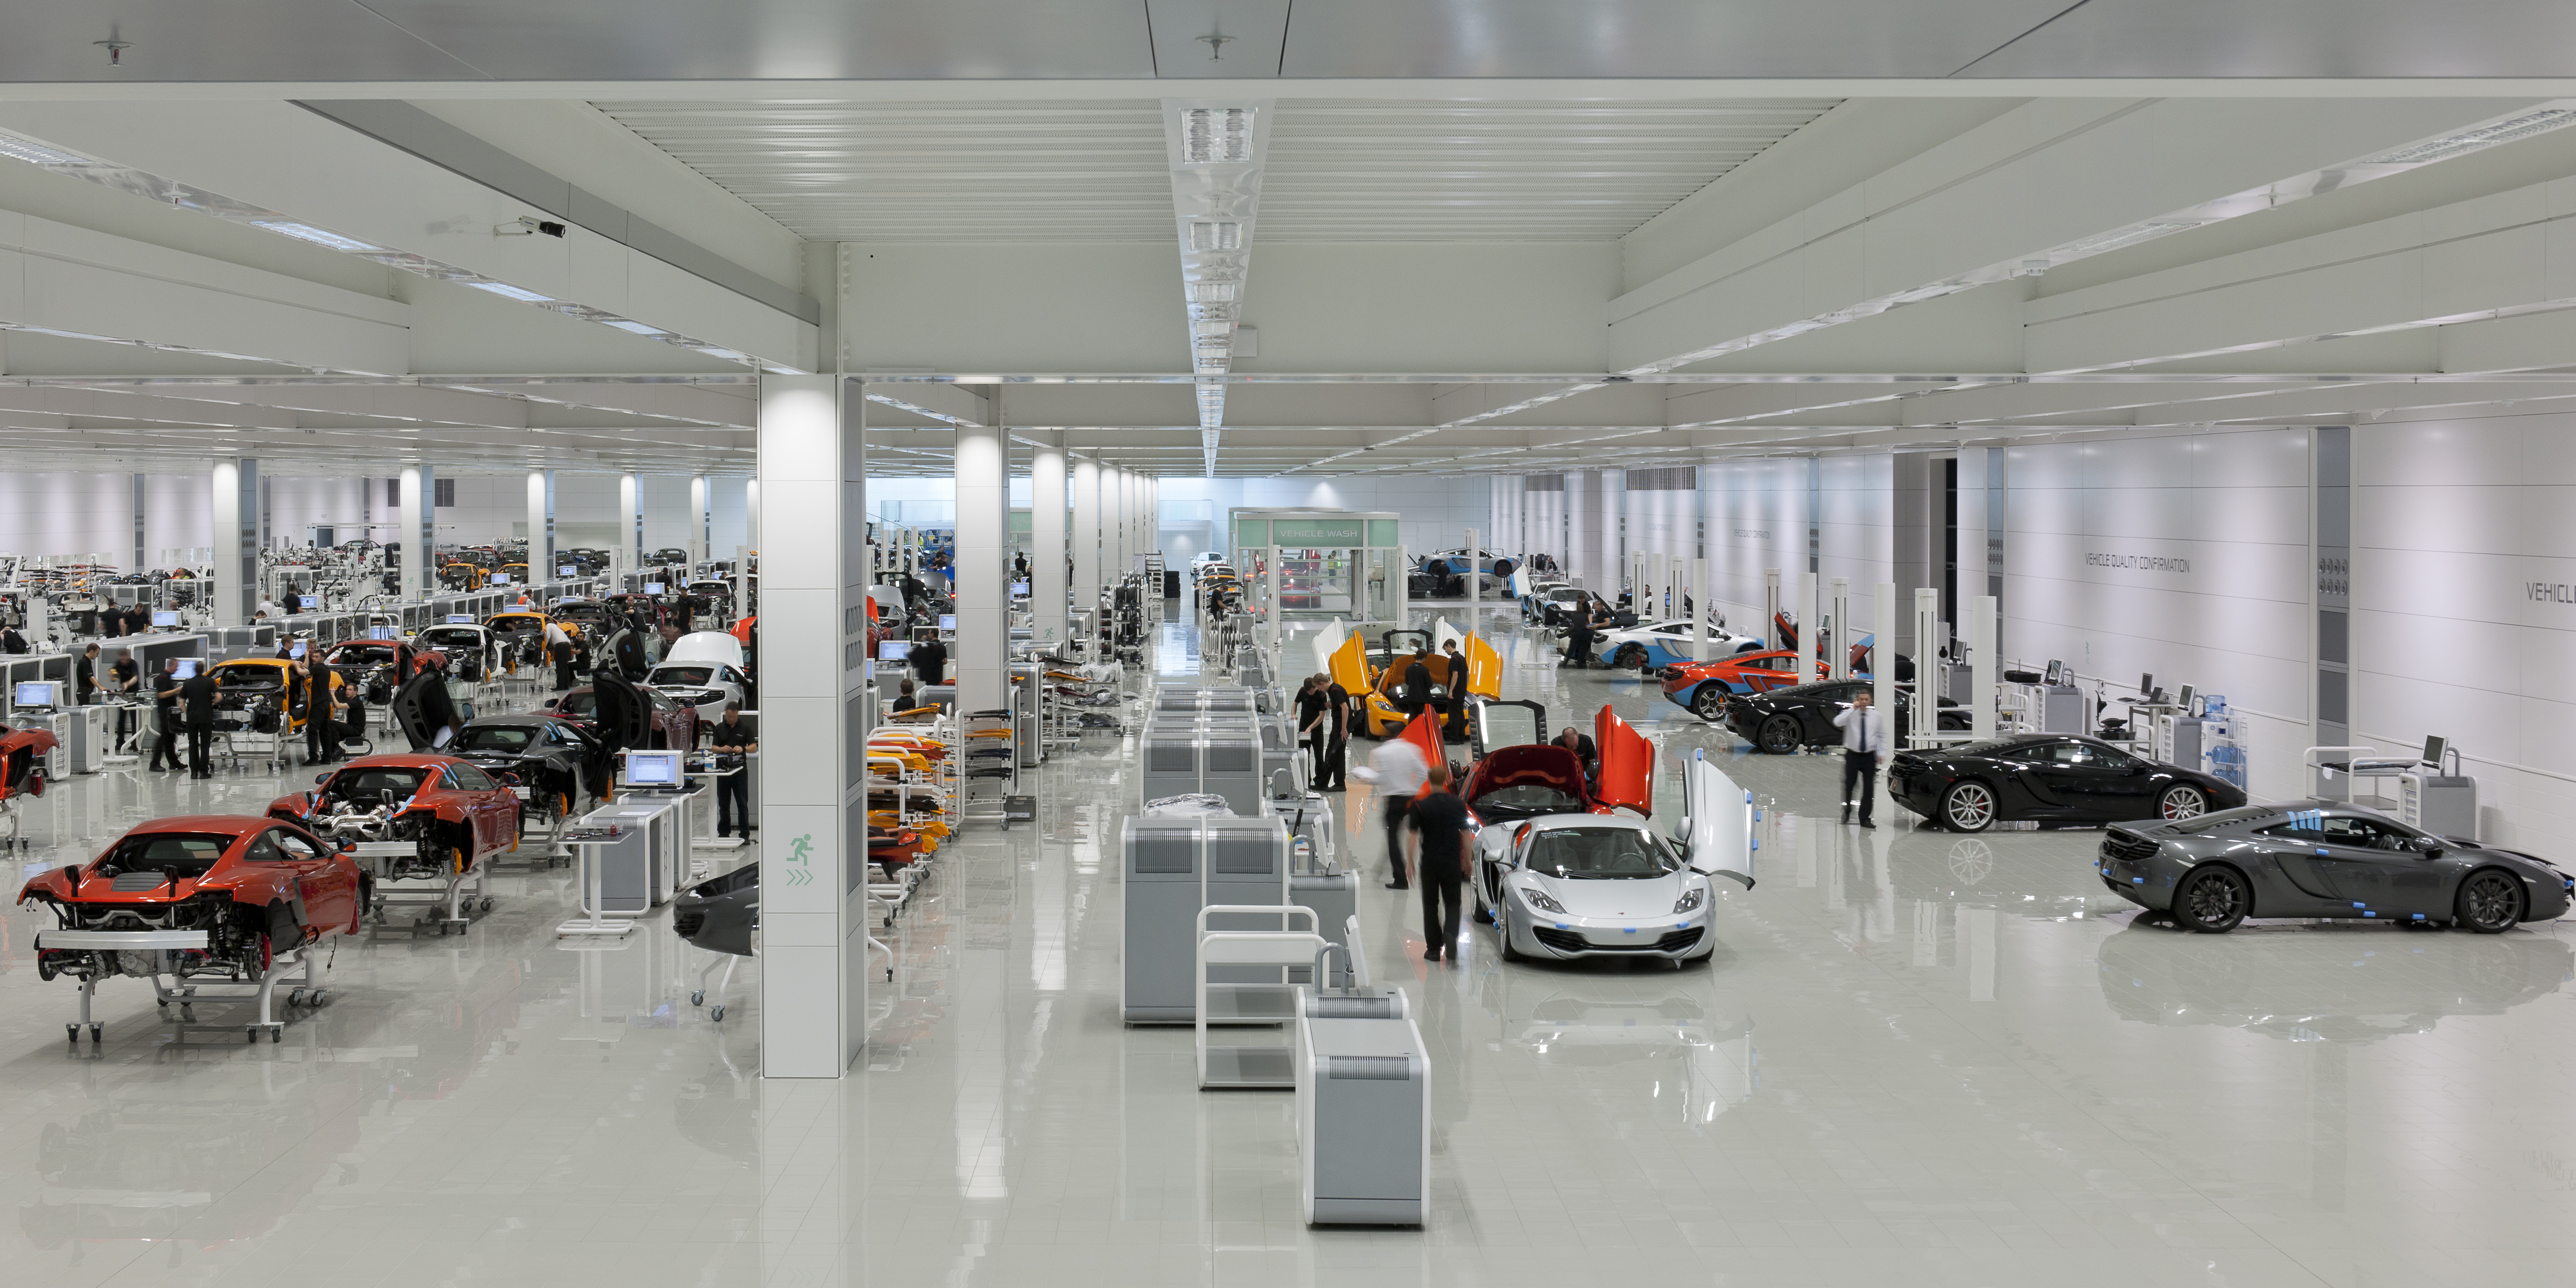 Spotless factory floor at McLaren Photo: britishfamily